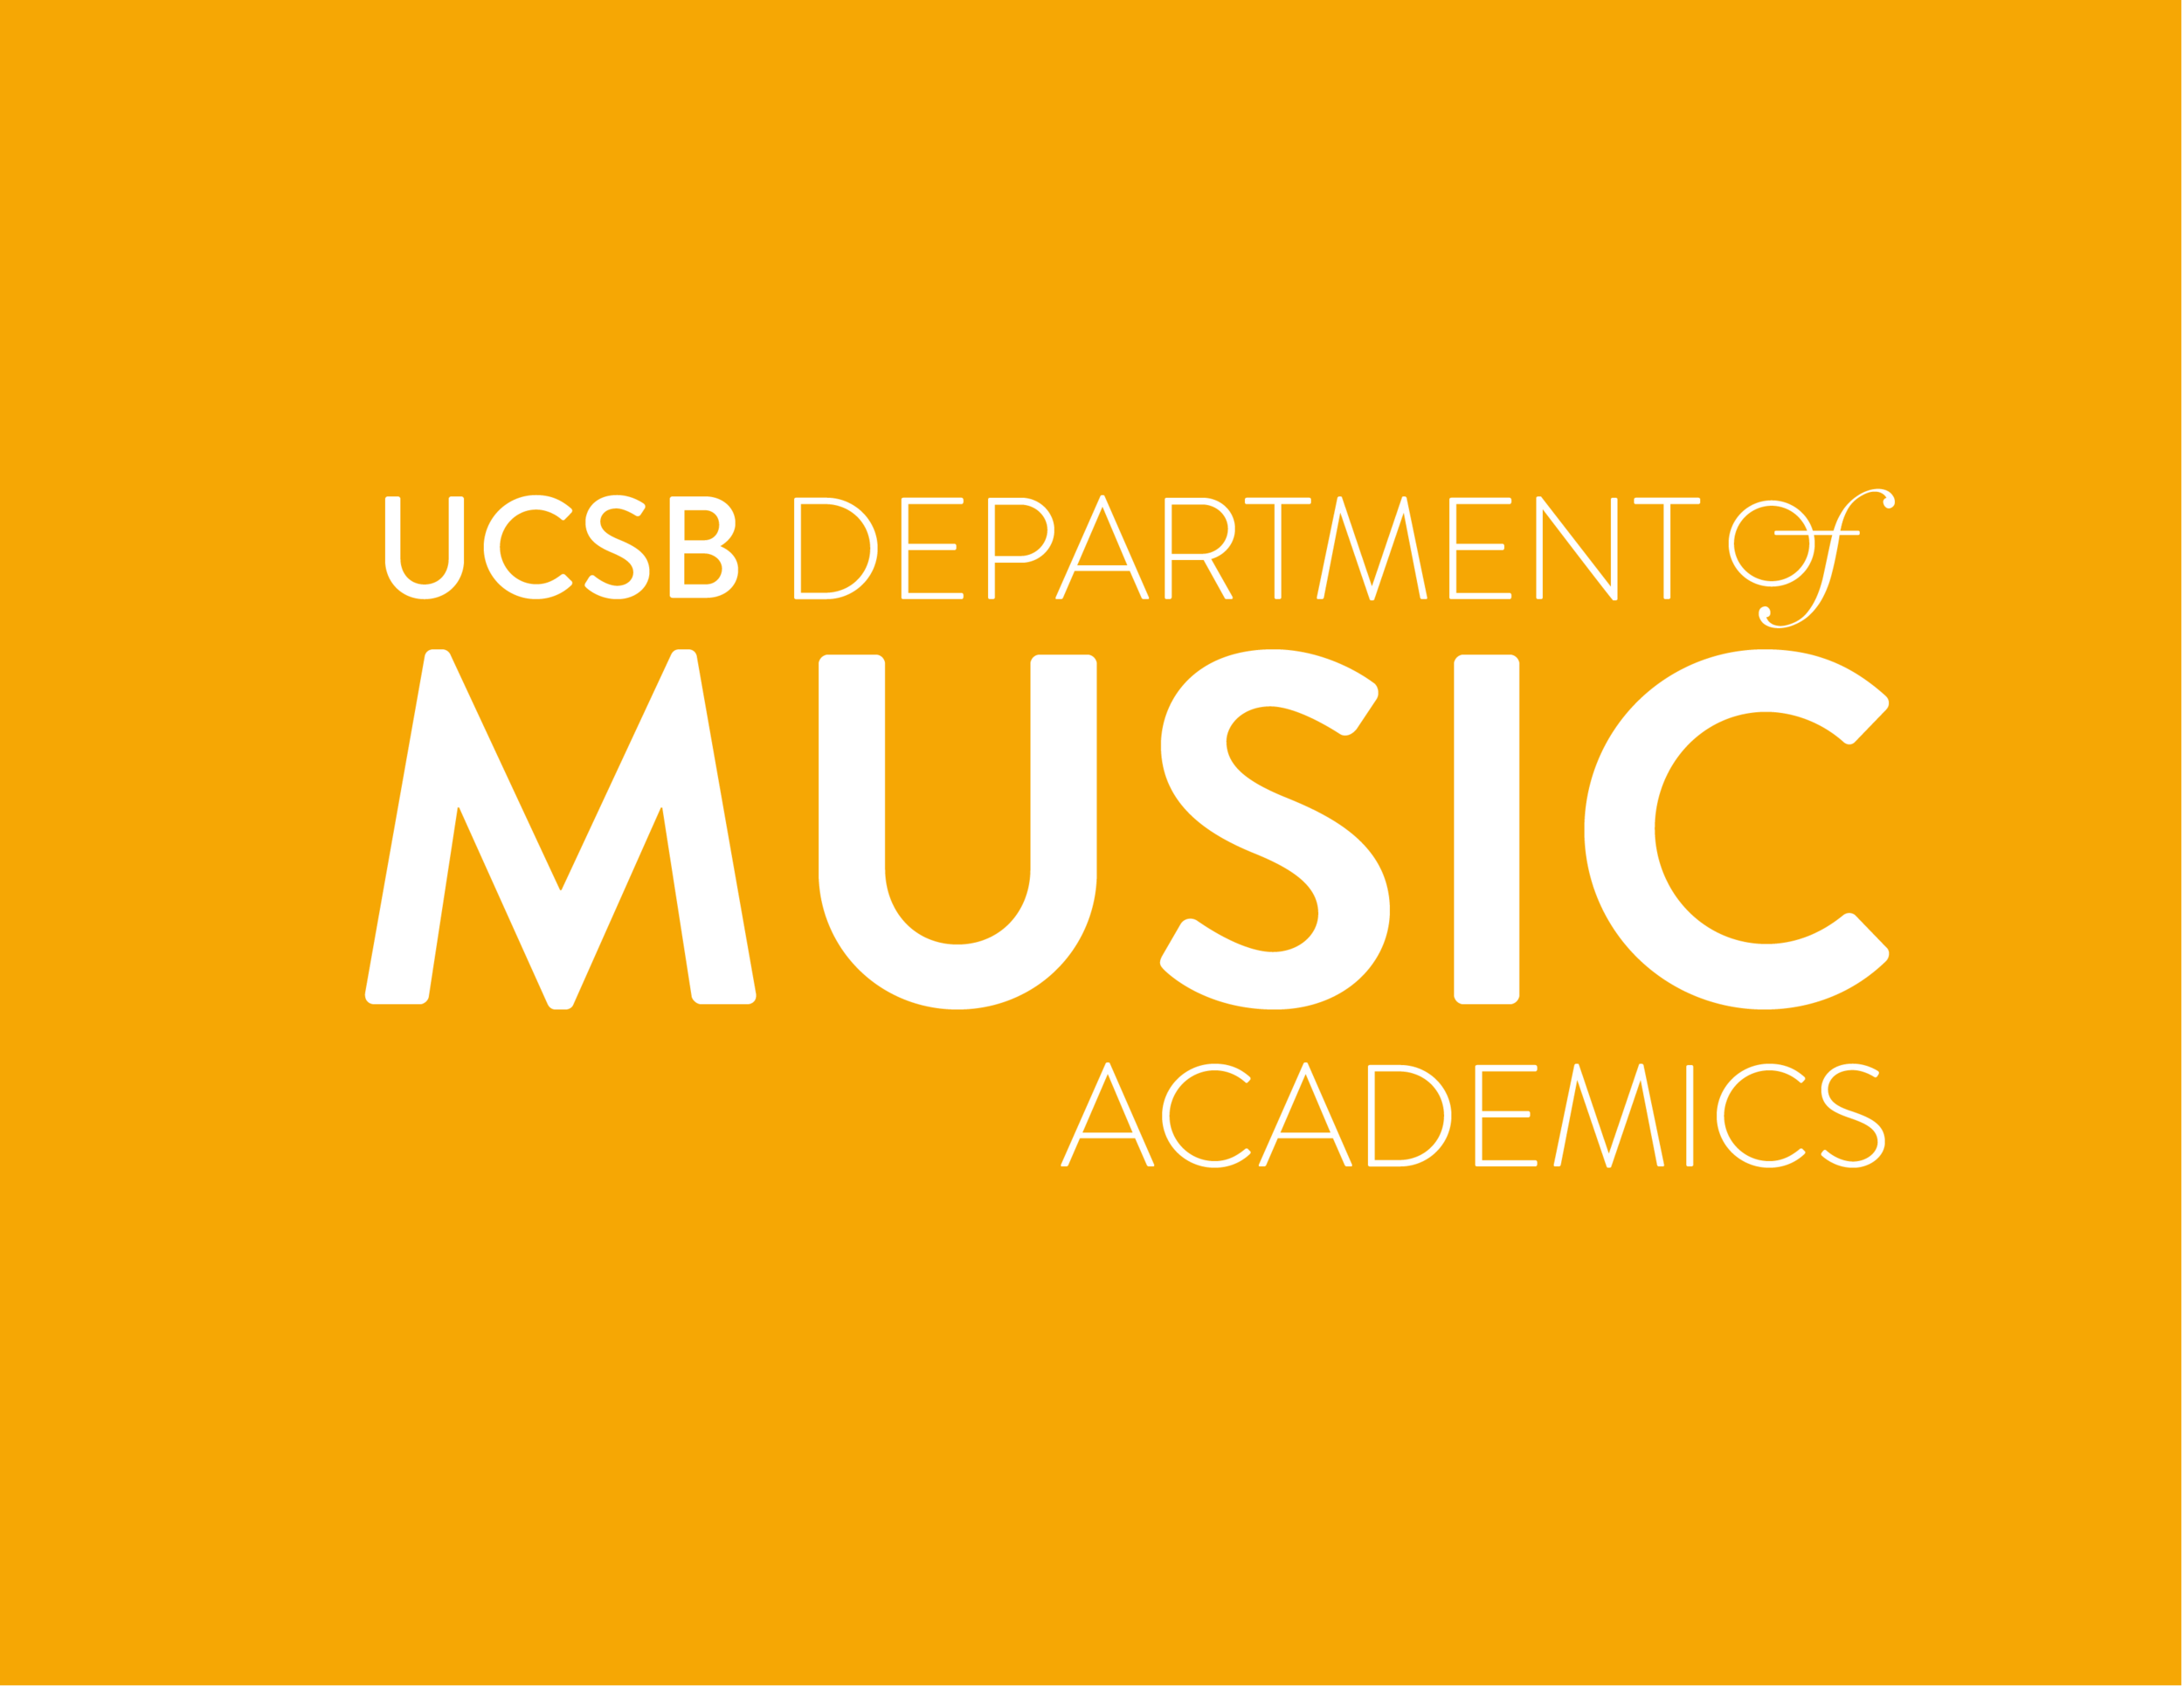 ucsb guidelines new logo and font use FINAL-23.png